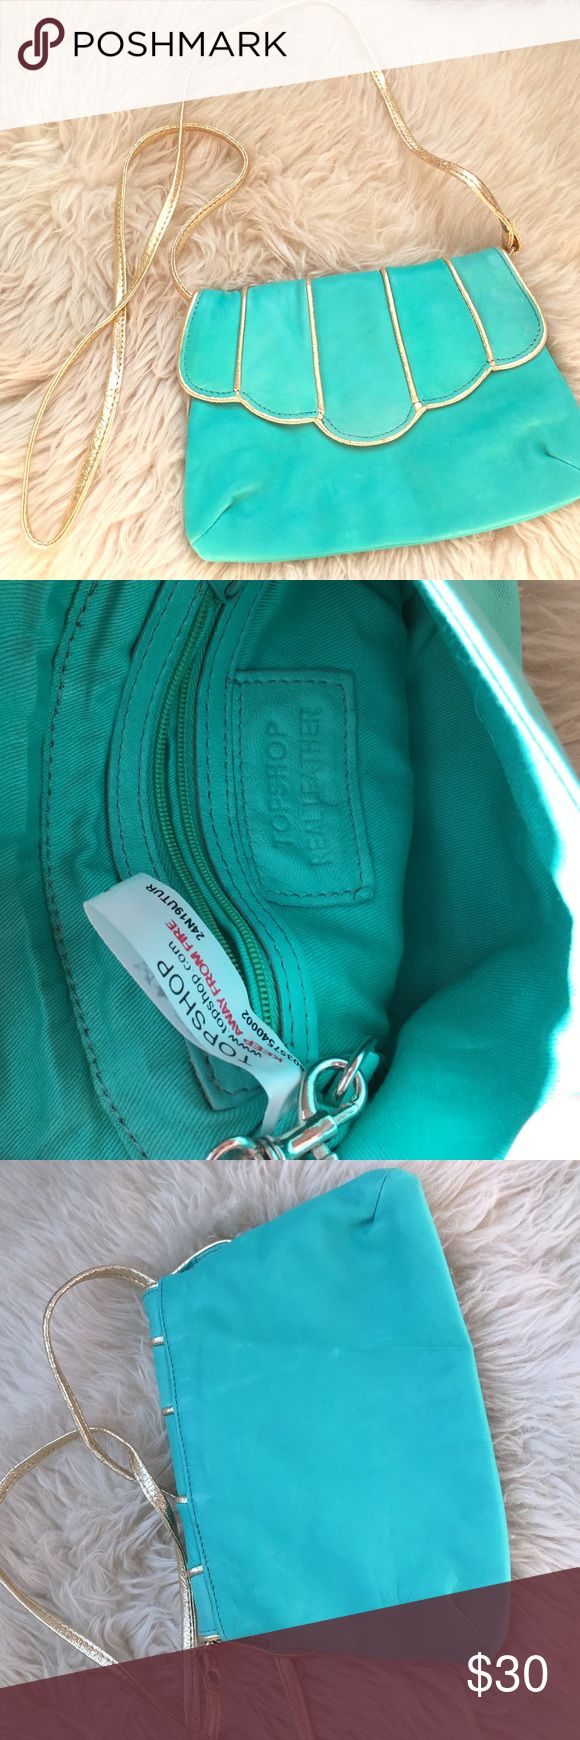 """🆕LISTING: Topshop purse NWOT. Never used. Teal leather and gold piping and strap. Strap can be removed and bag can be carried as a clutch. Zipped pocket inside. 9"""" wide and 6"""" tall. Strap is approx 22.5"""" drop. 🚫TRADES Topshop Bags Shoulder Bags"""